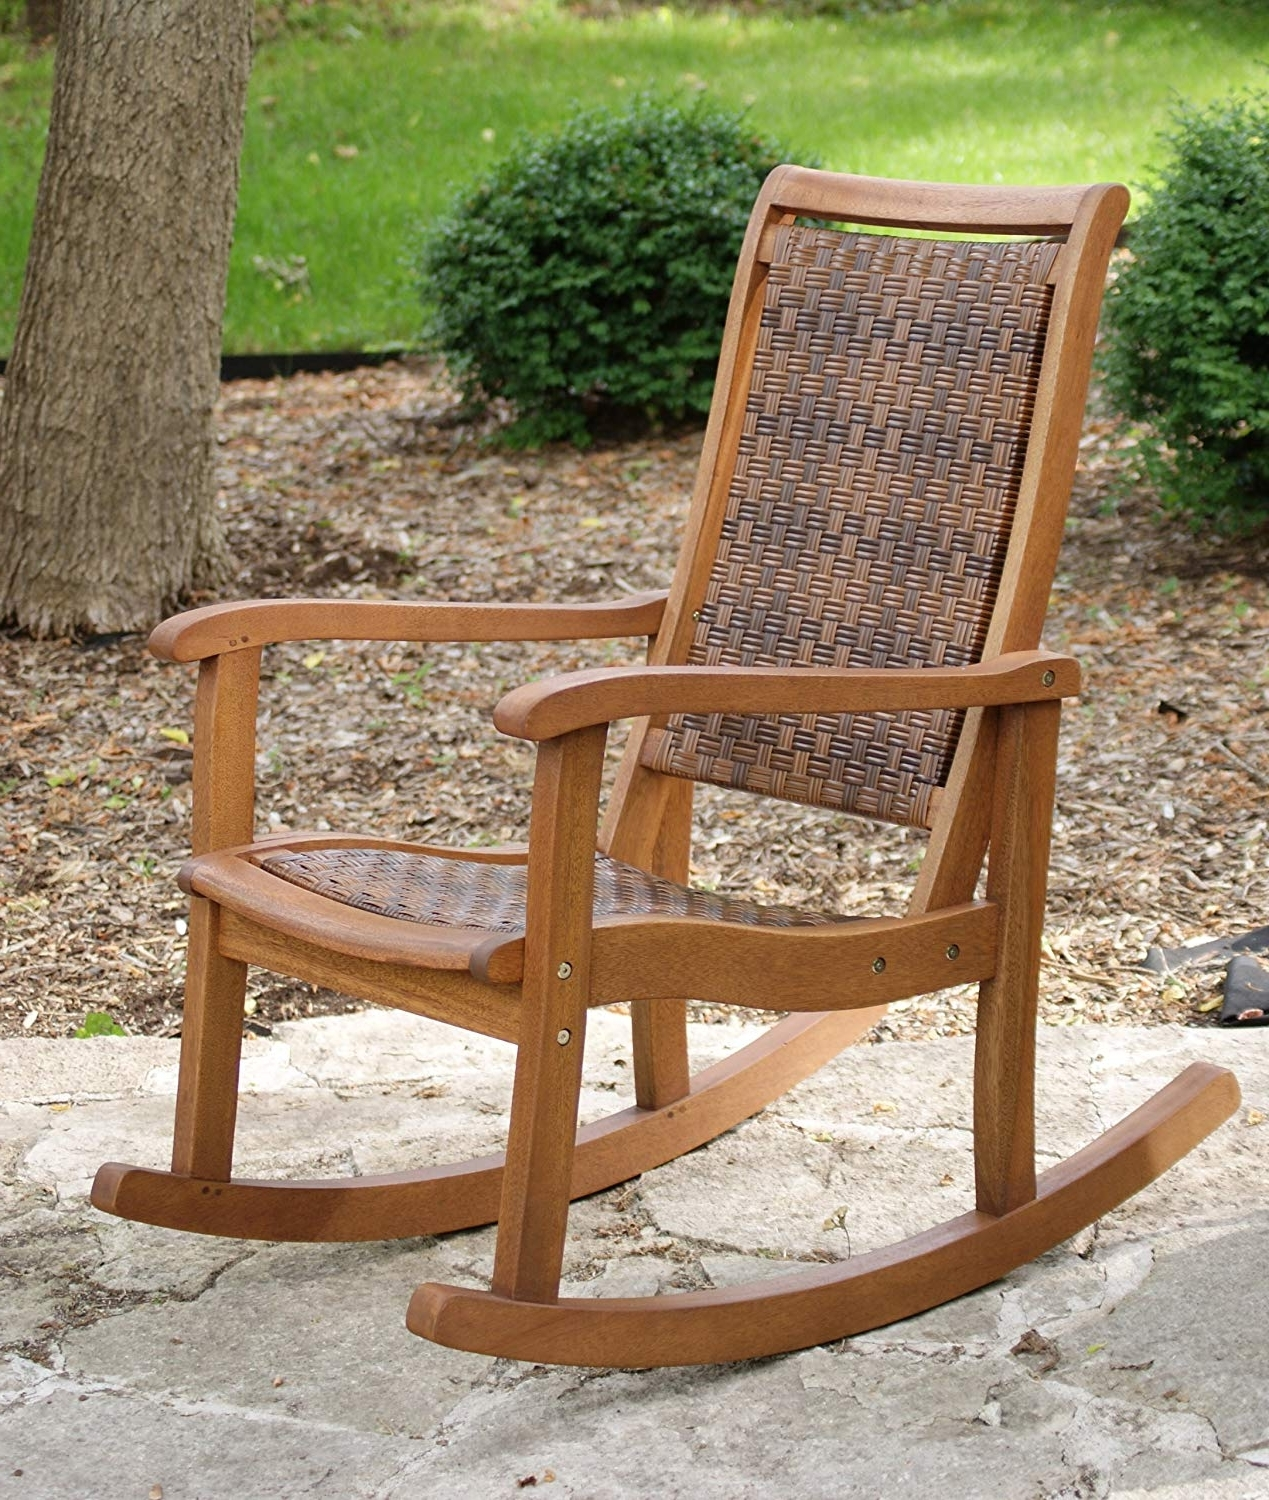 Trendy Outdoor Rocking Chairs Throughout Amazon : Outdoor Interiors 21095Rc All Weather Wicker Mocha And (View 13 of 15)